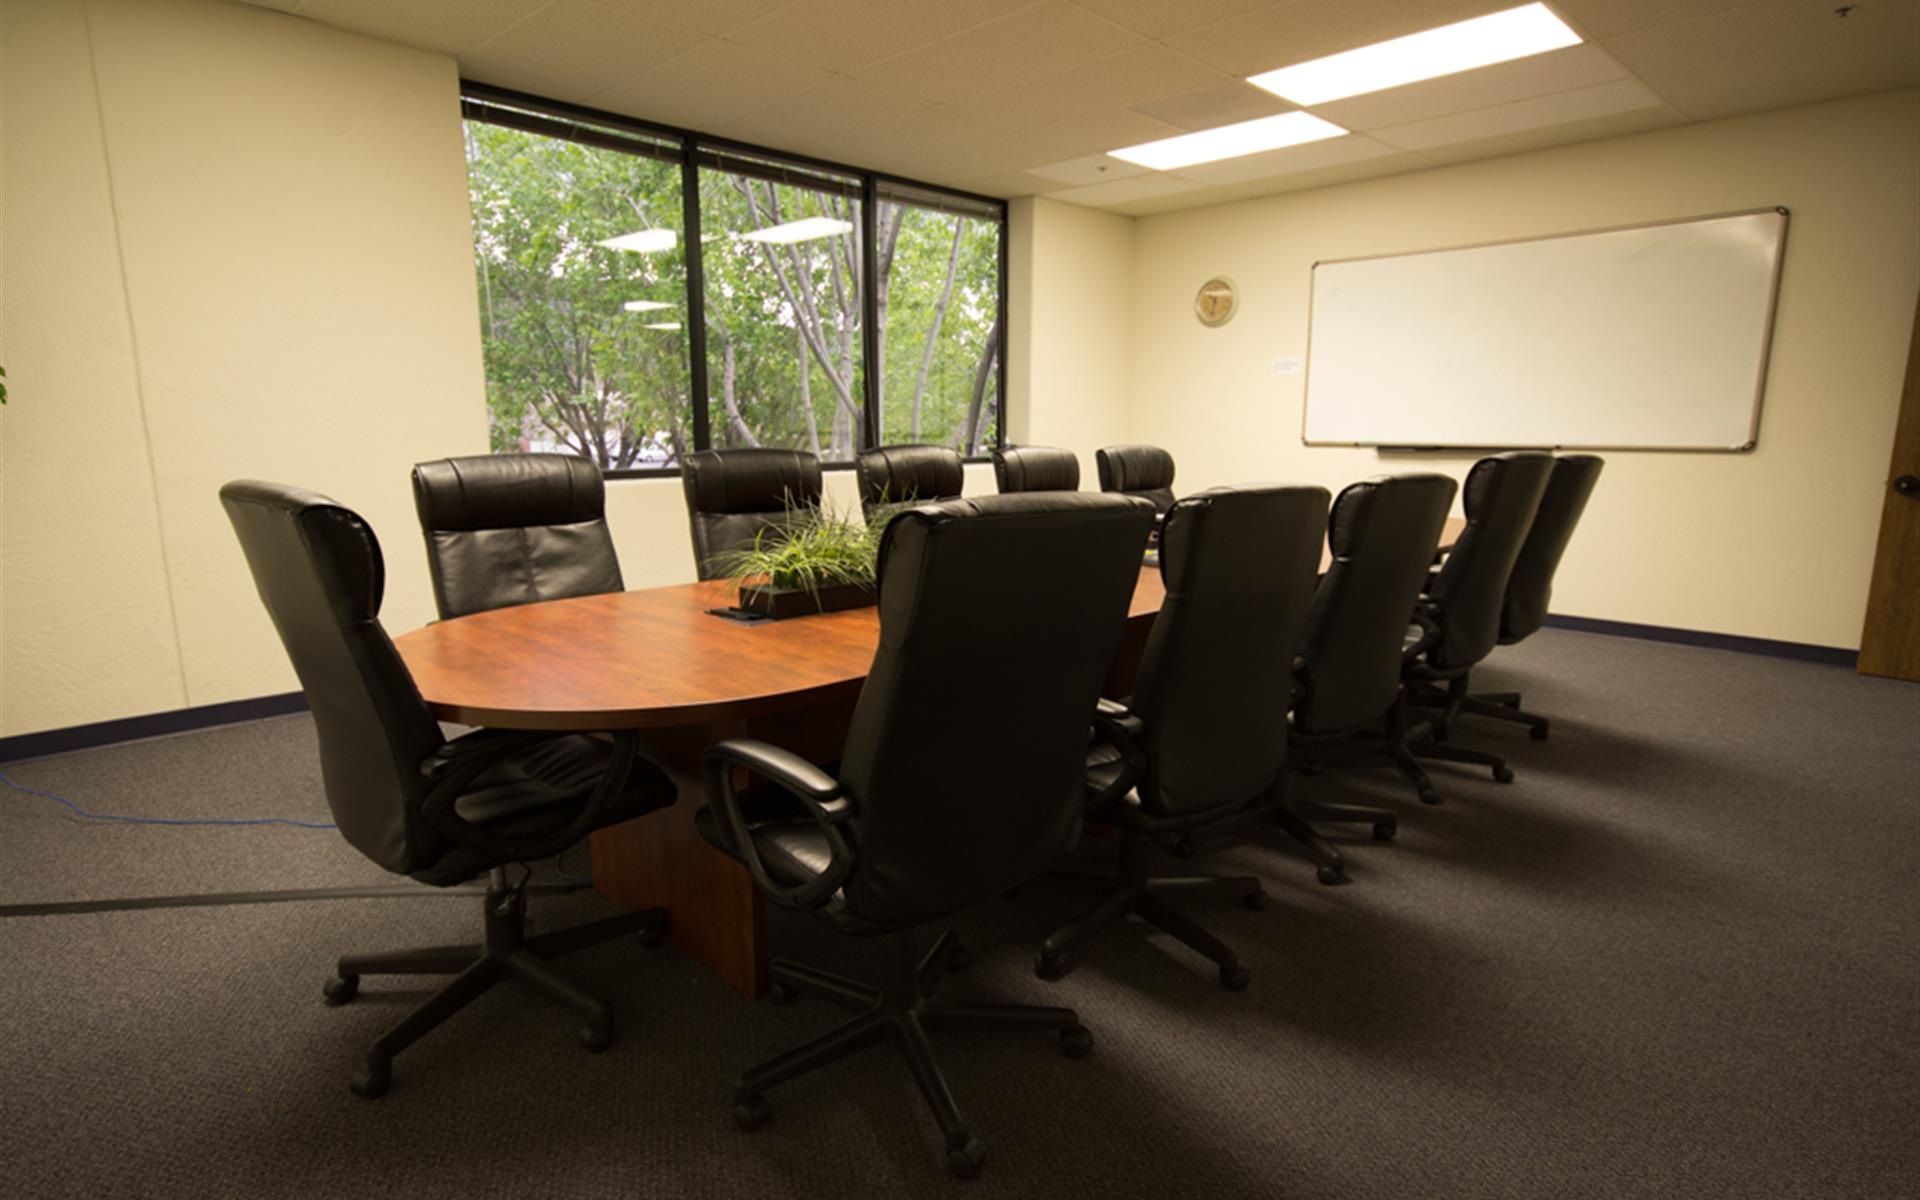 Second Workspace - Conference Room for 20